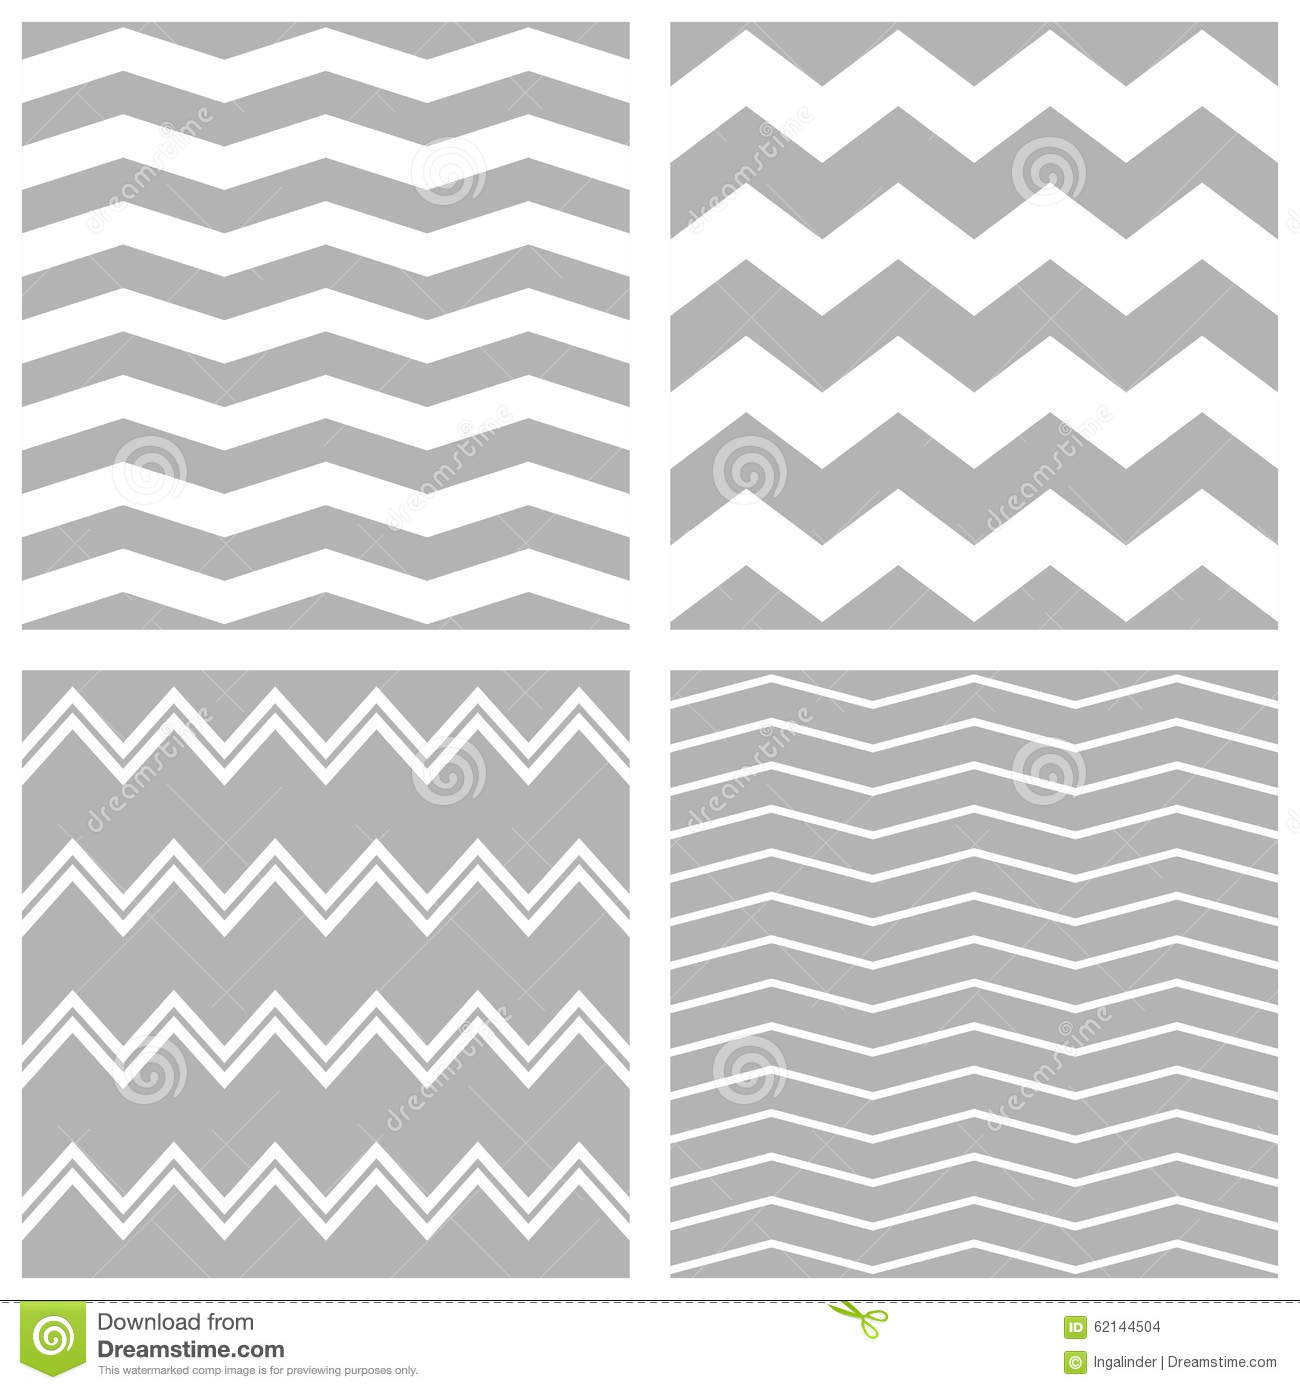 tile vector chevron pattern set with white and grey zig zag background stock vector. Black Bedroom Furniture Sets. Home Design Ideas